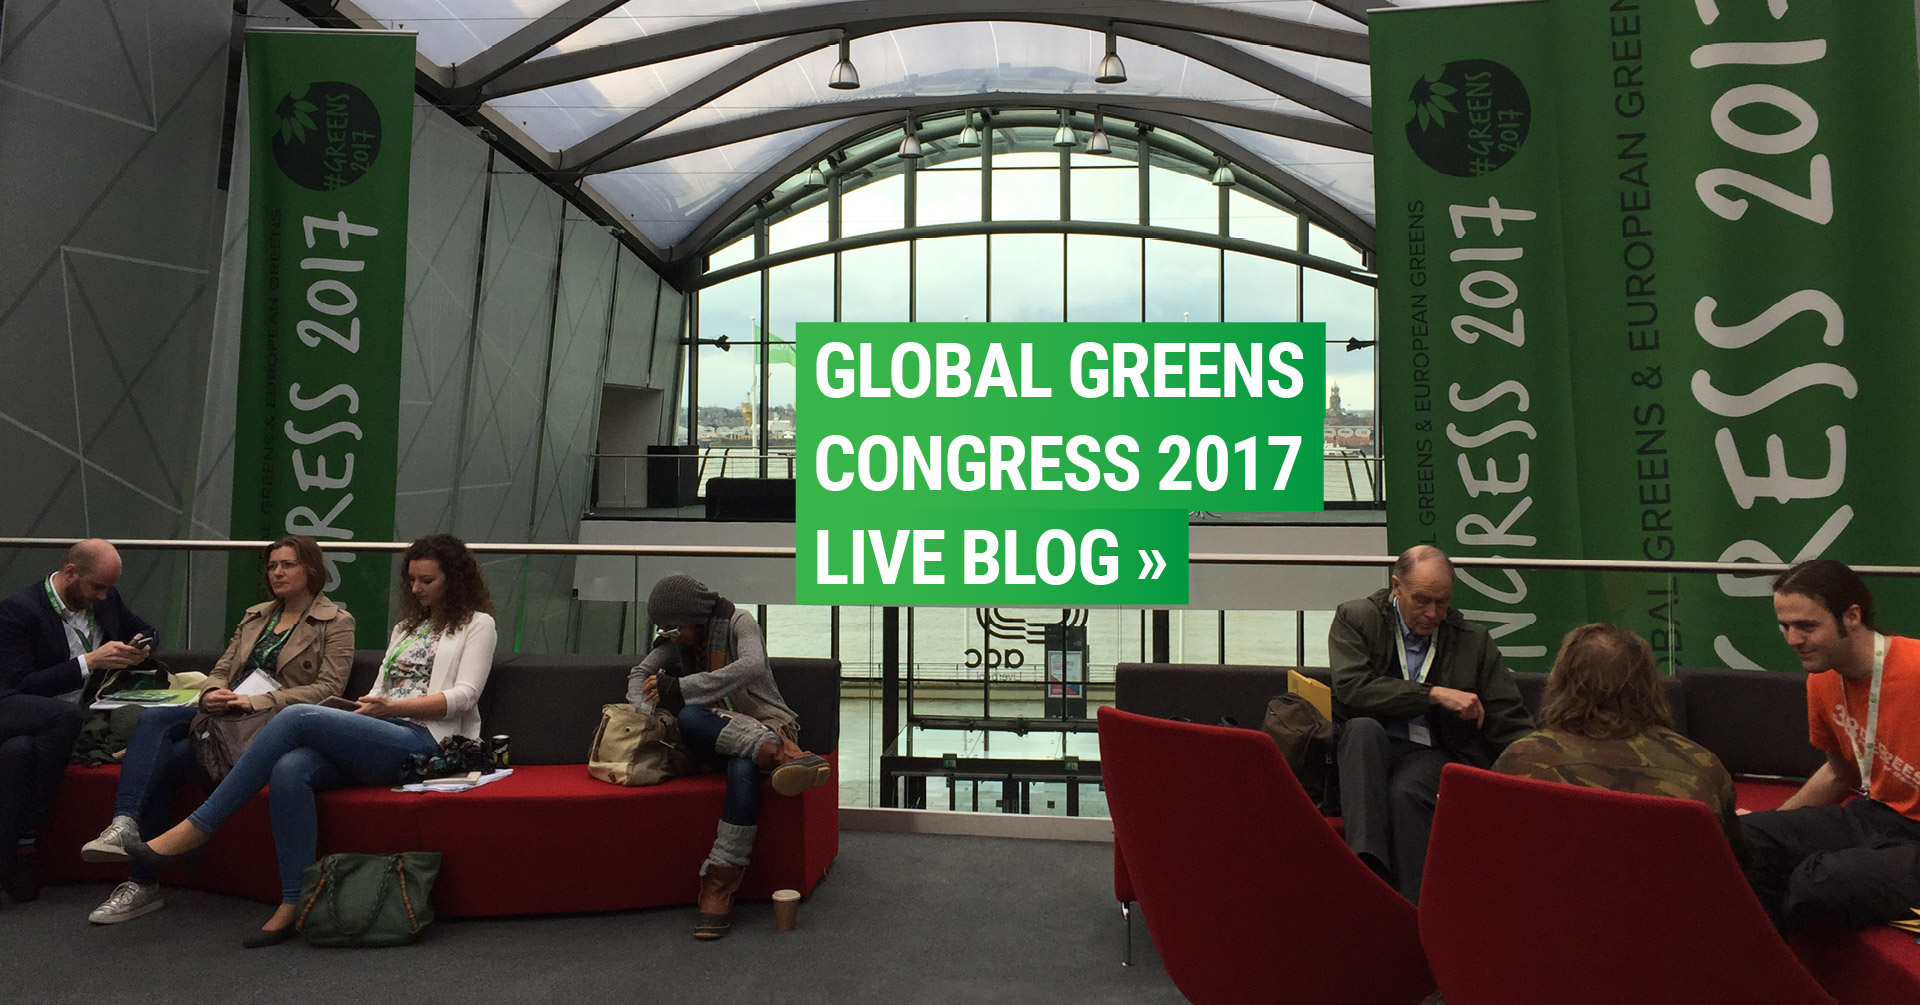 Global greens congress 2017 live blog